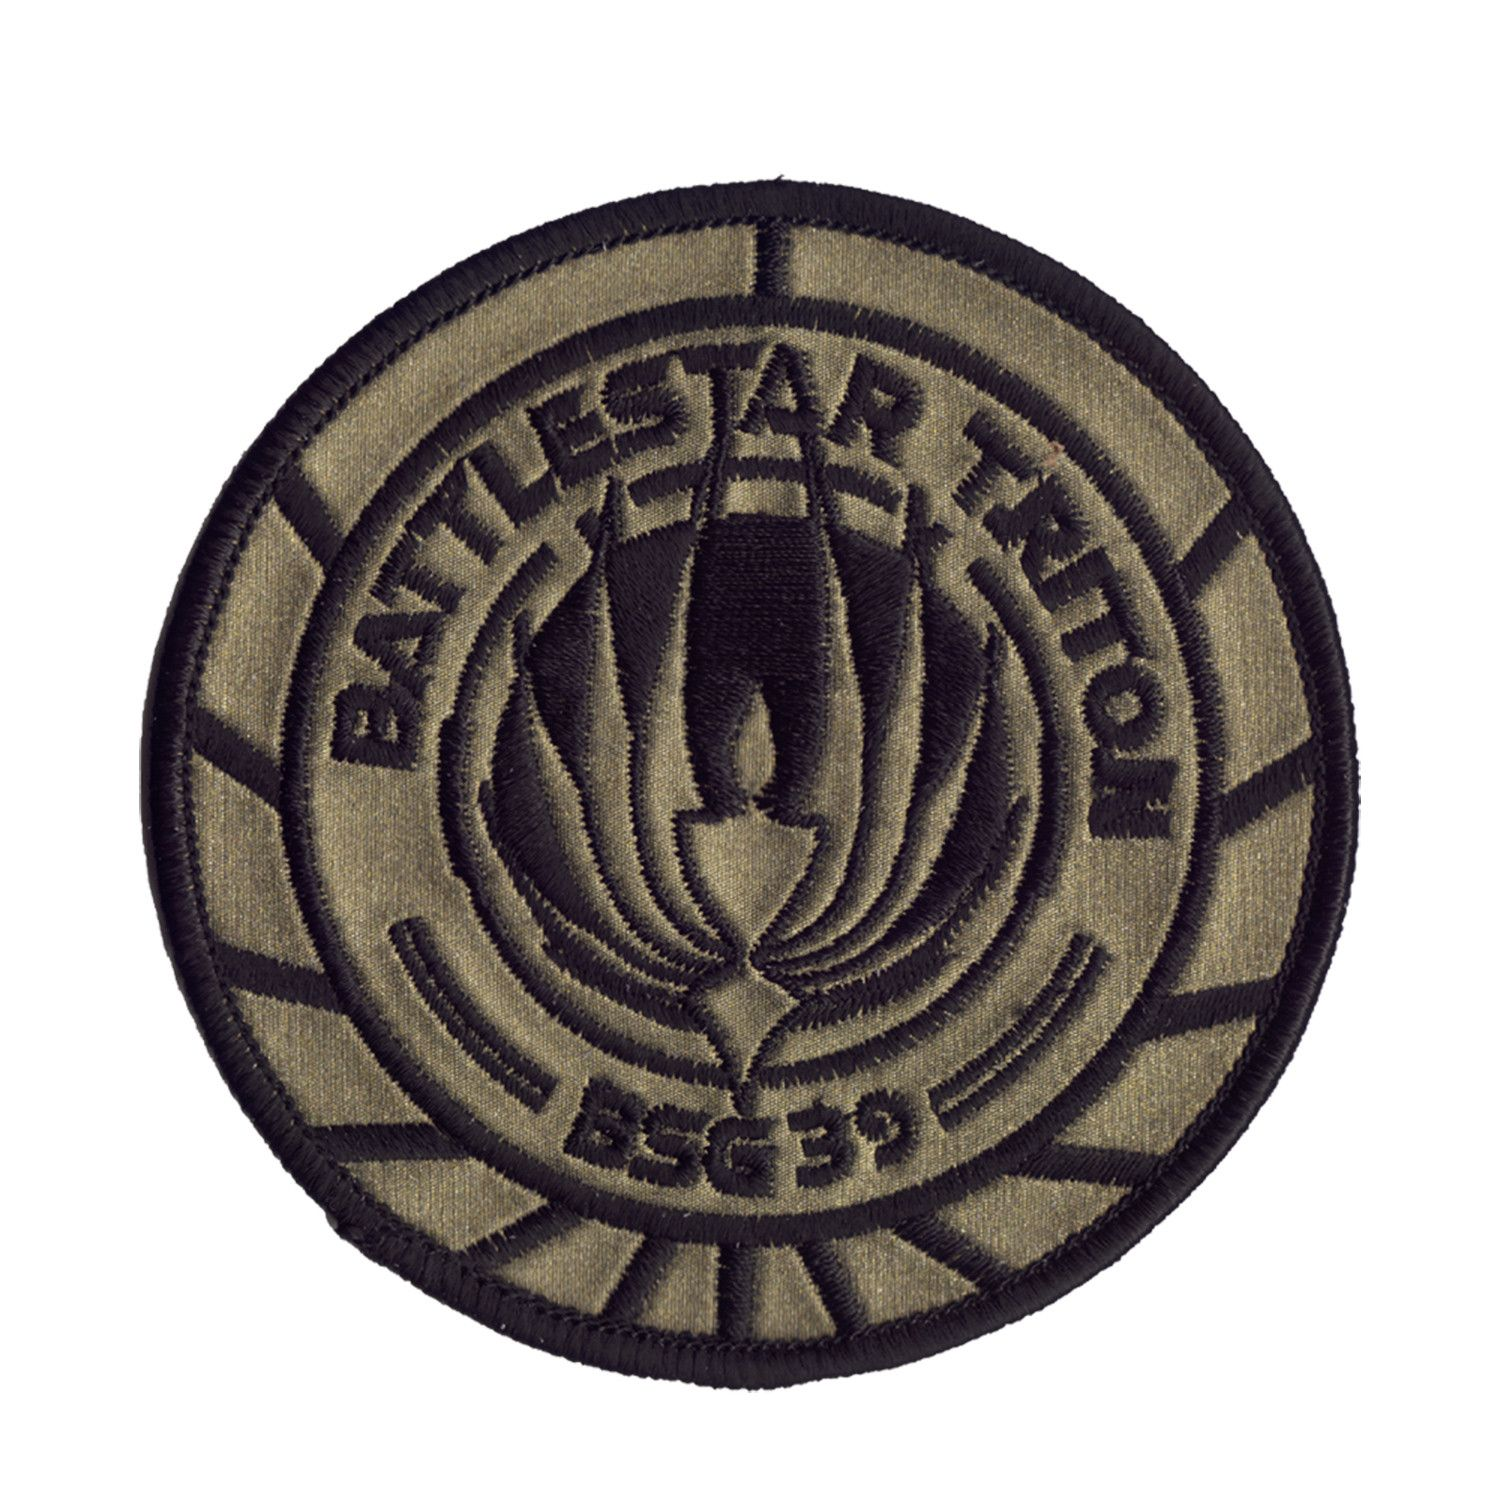 Battlestar Galactica Patch BSG Patch So Say We All Patch Scifi Patch